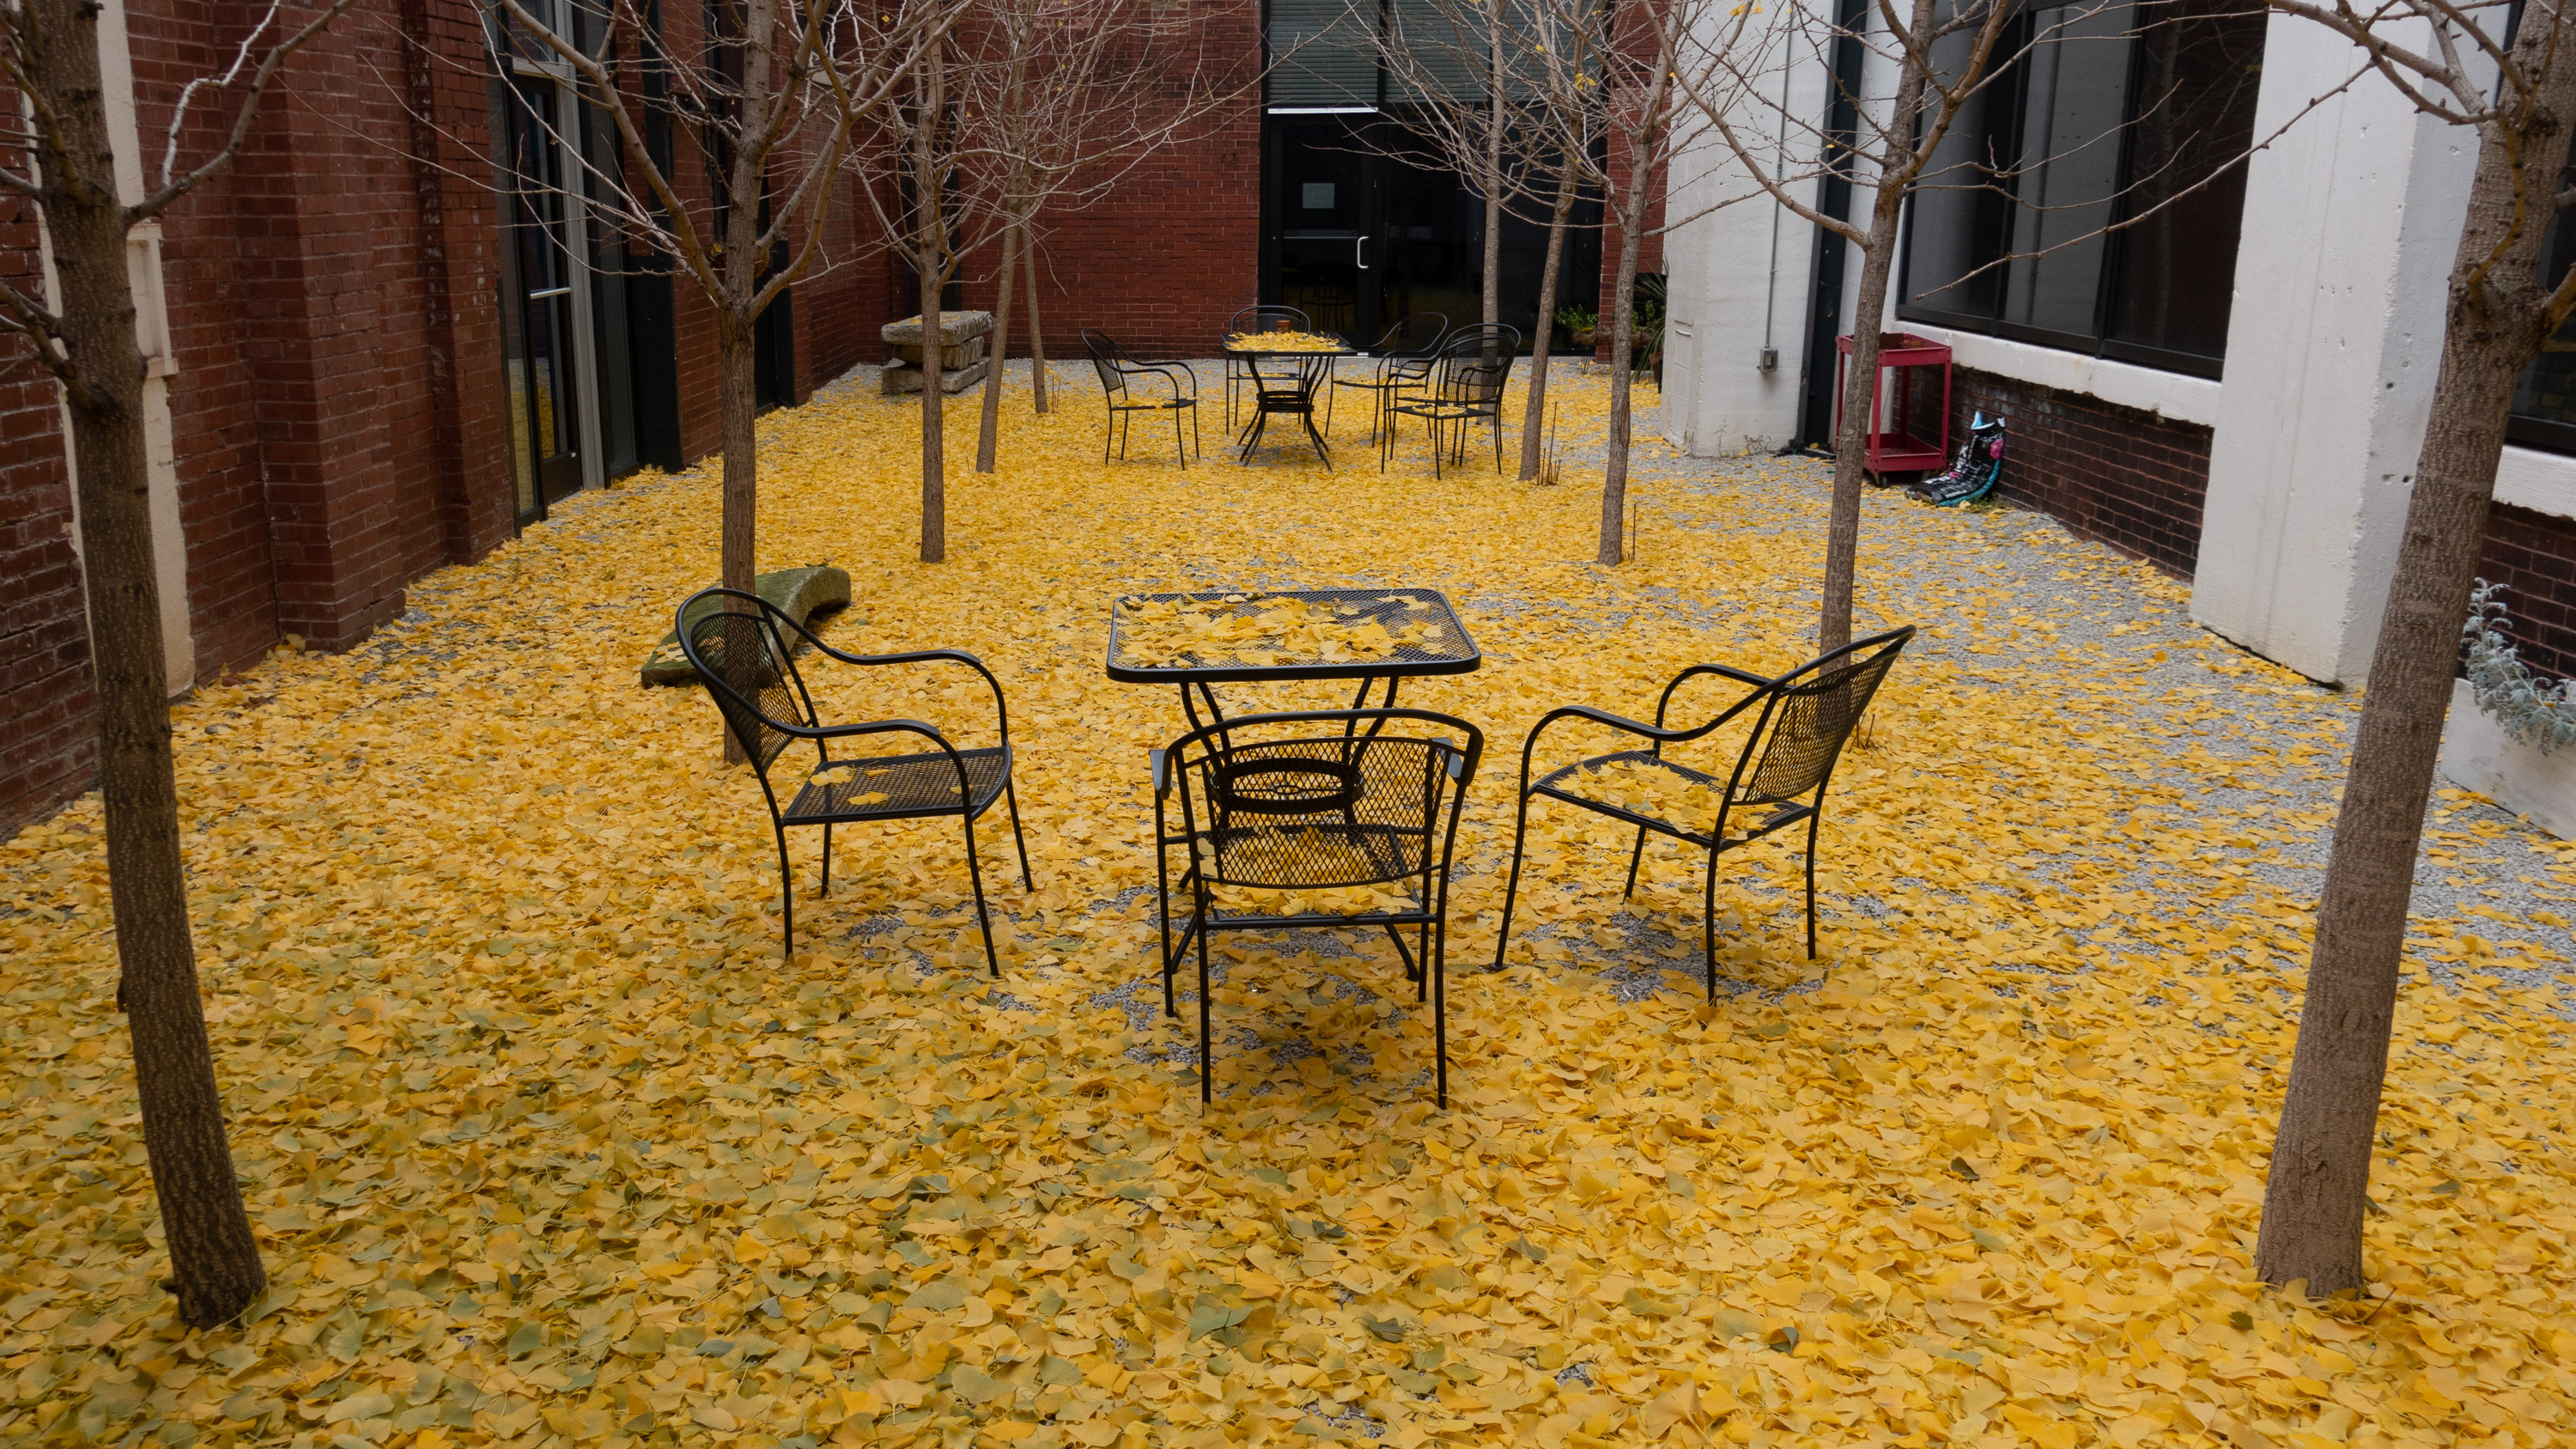 Ginkgo leaves on ground